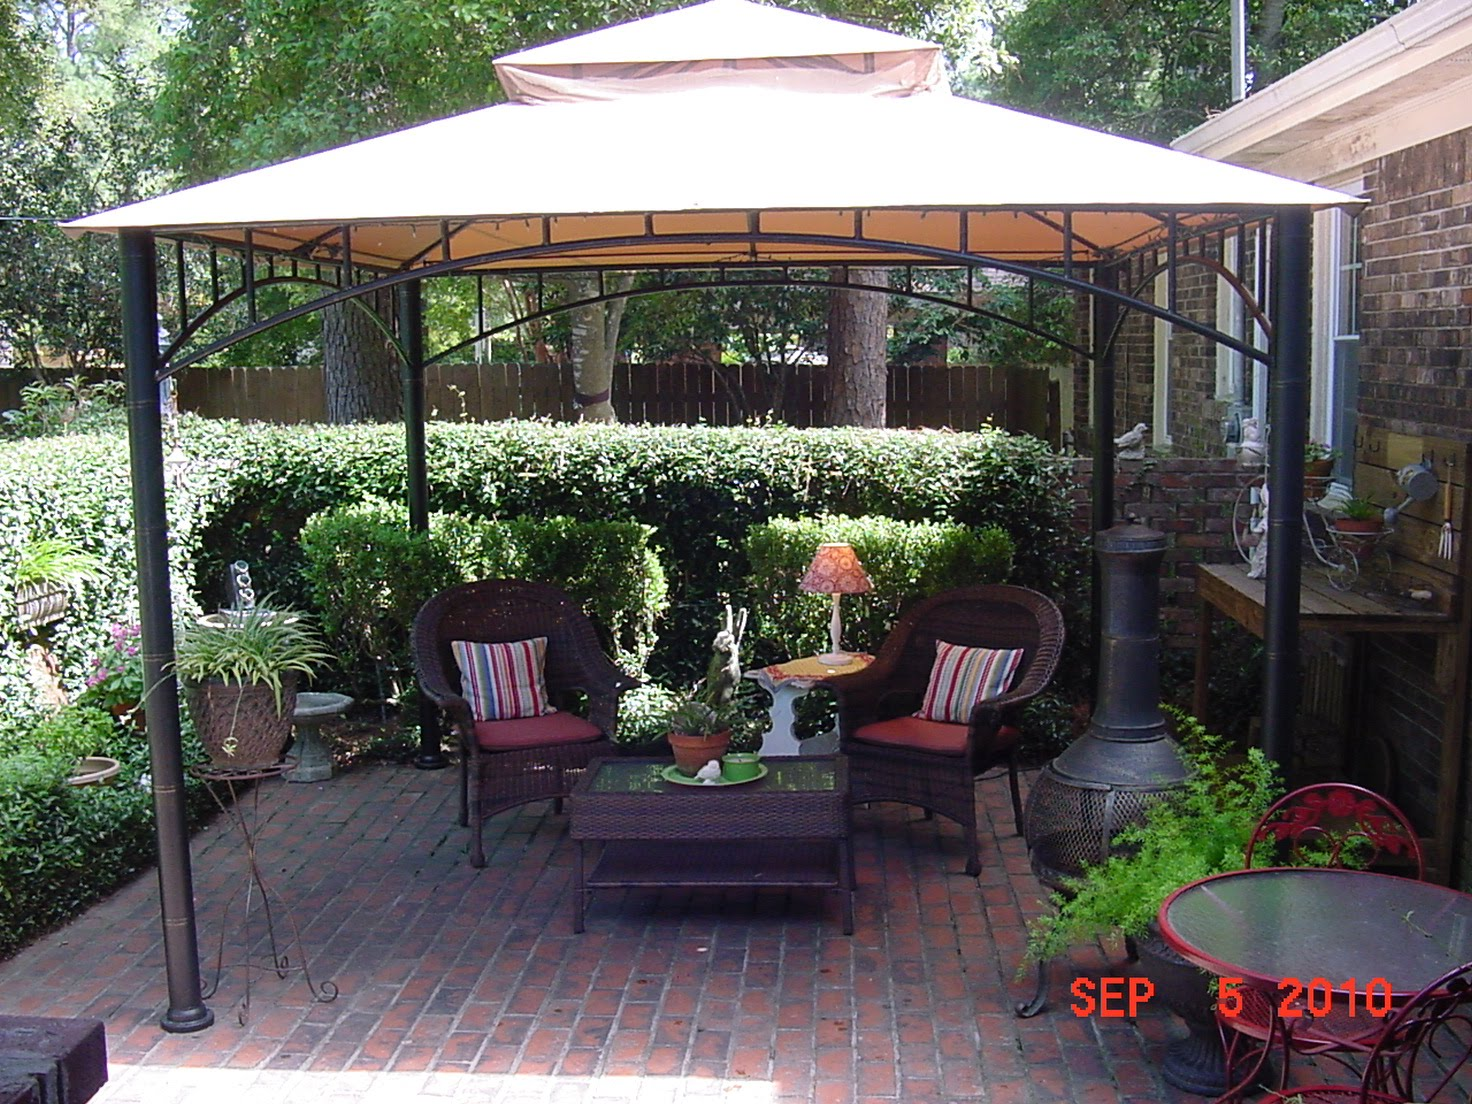 The Happy Homebody: My Patio Canopy